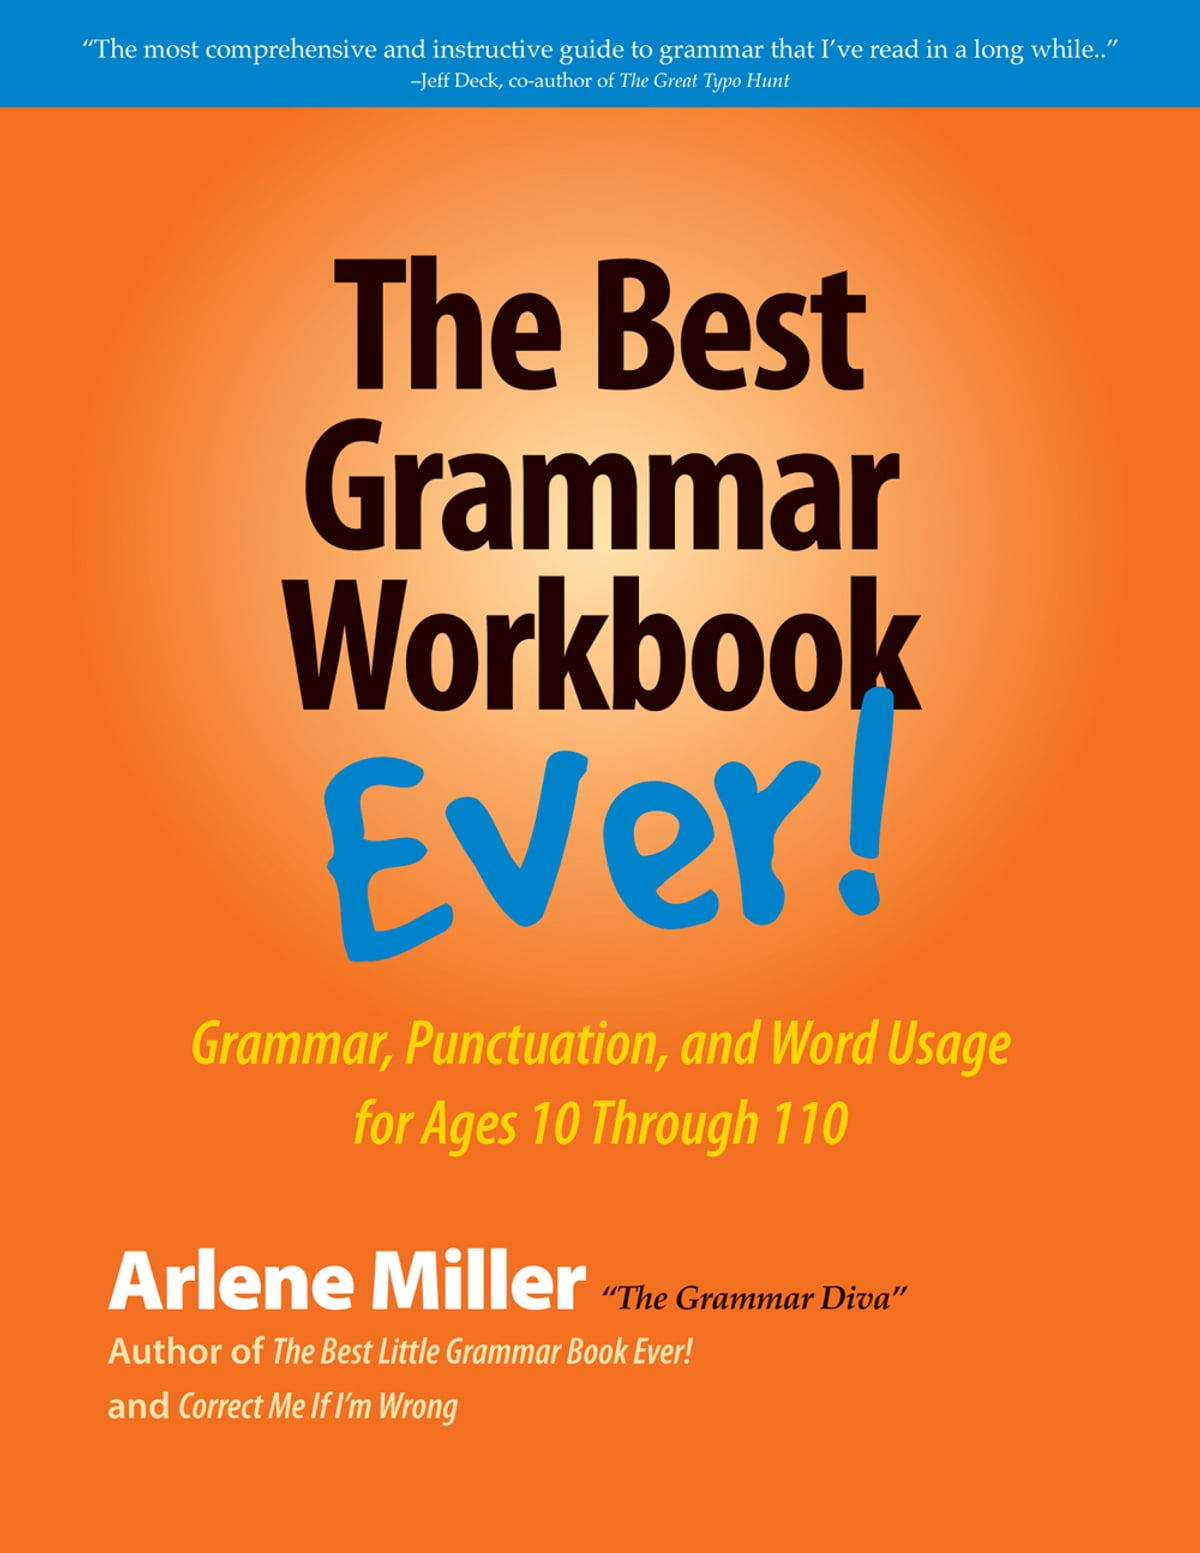 The Best Grammar Workbook Ever! eBook by Arlene Miller ...